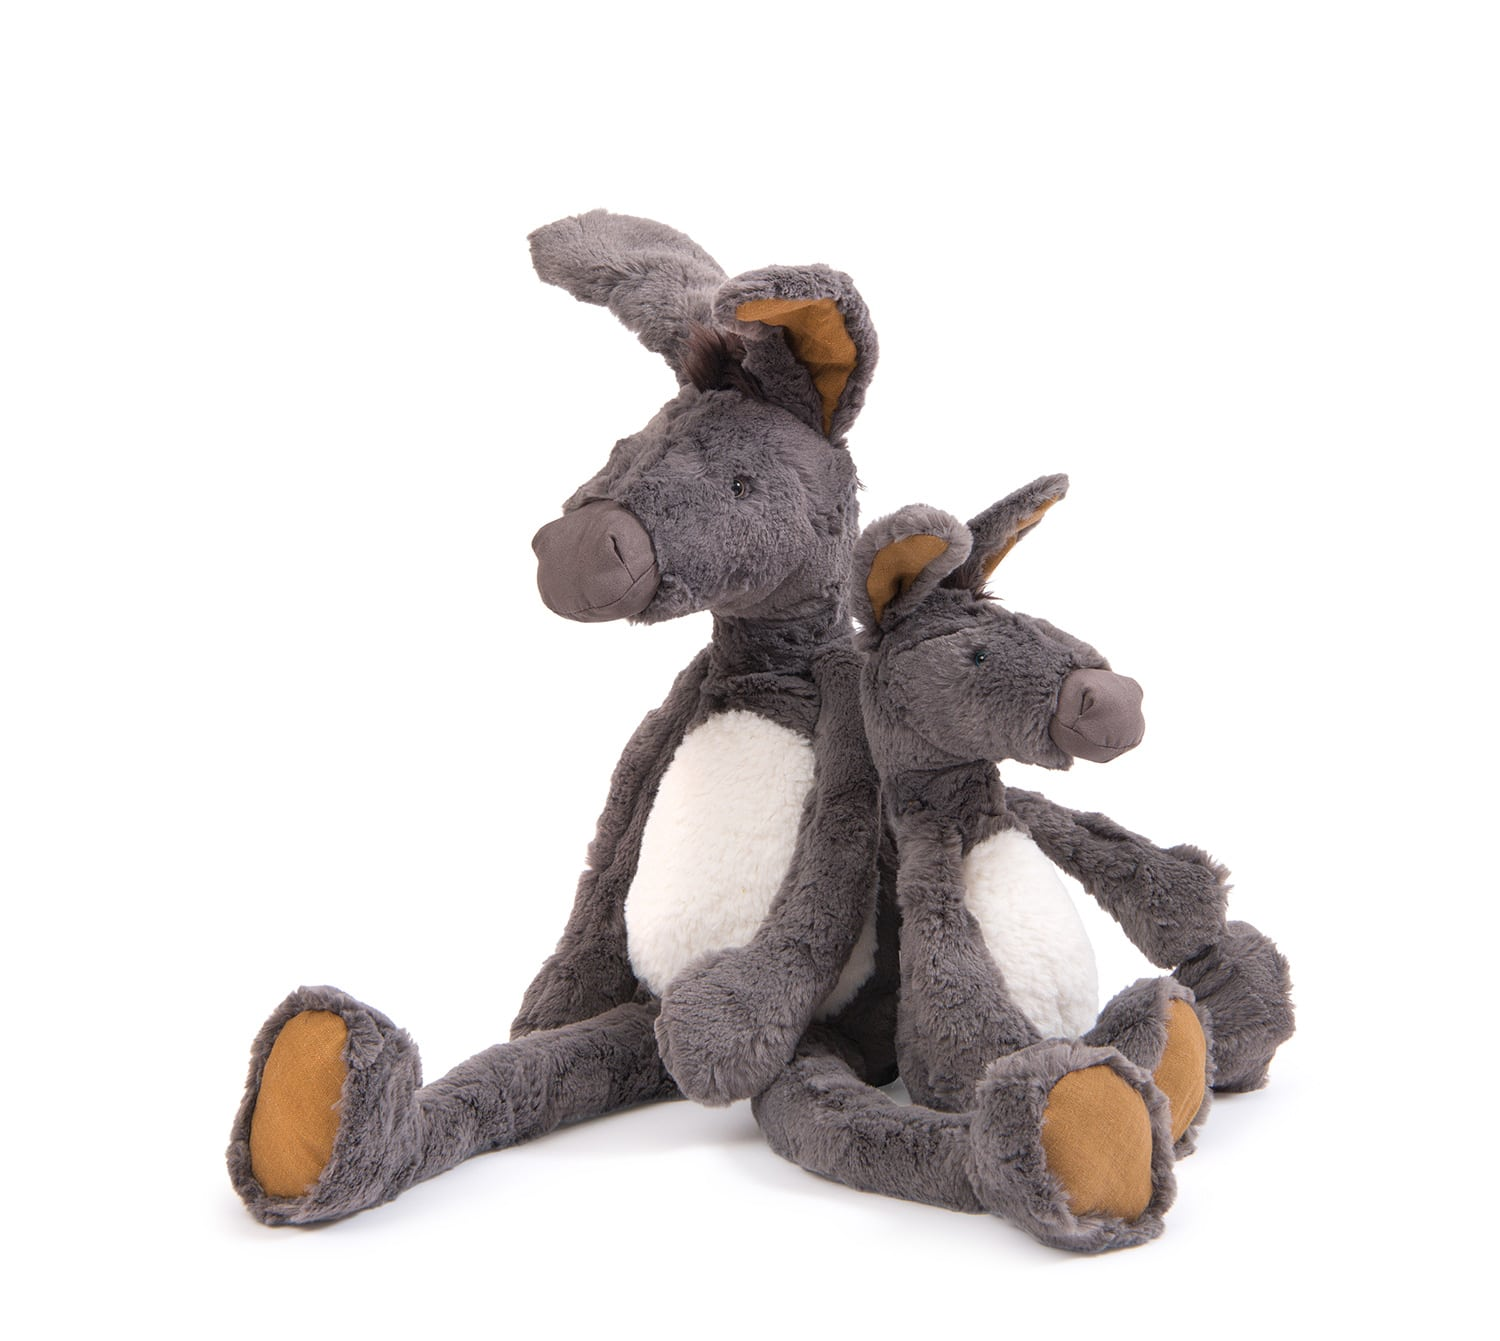 big and little donkey teddy bear - moulin roty